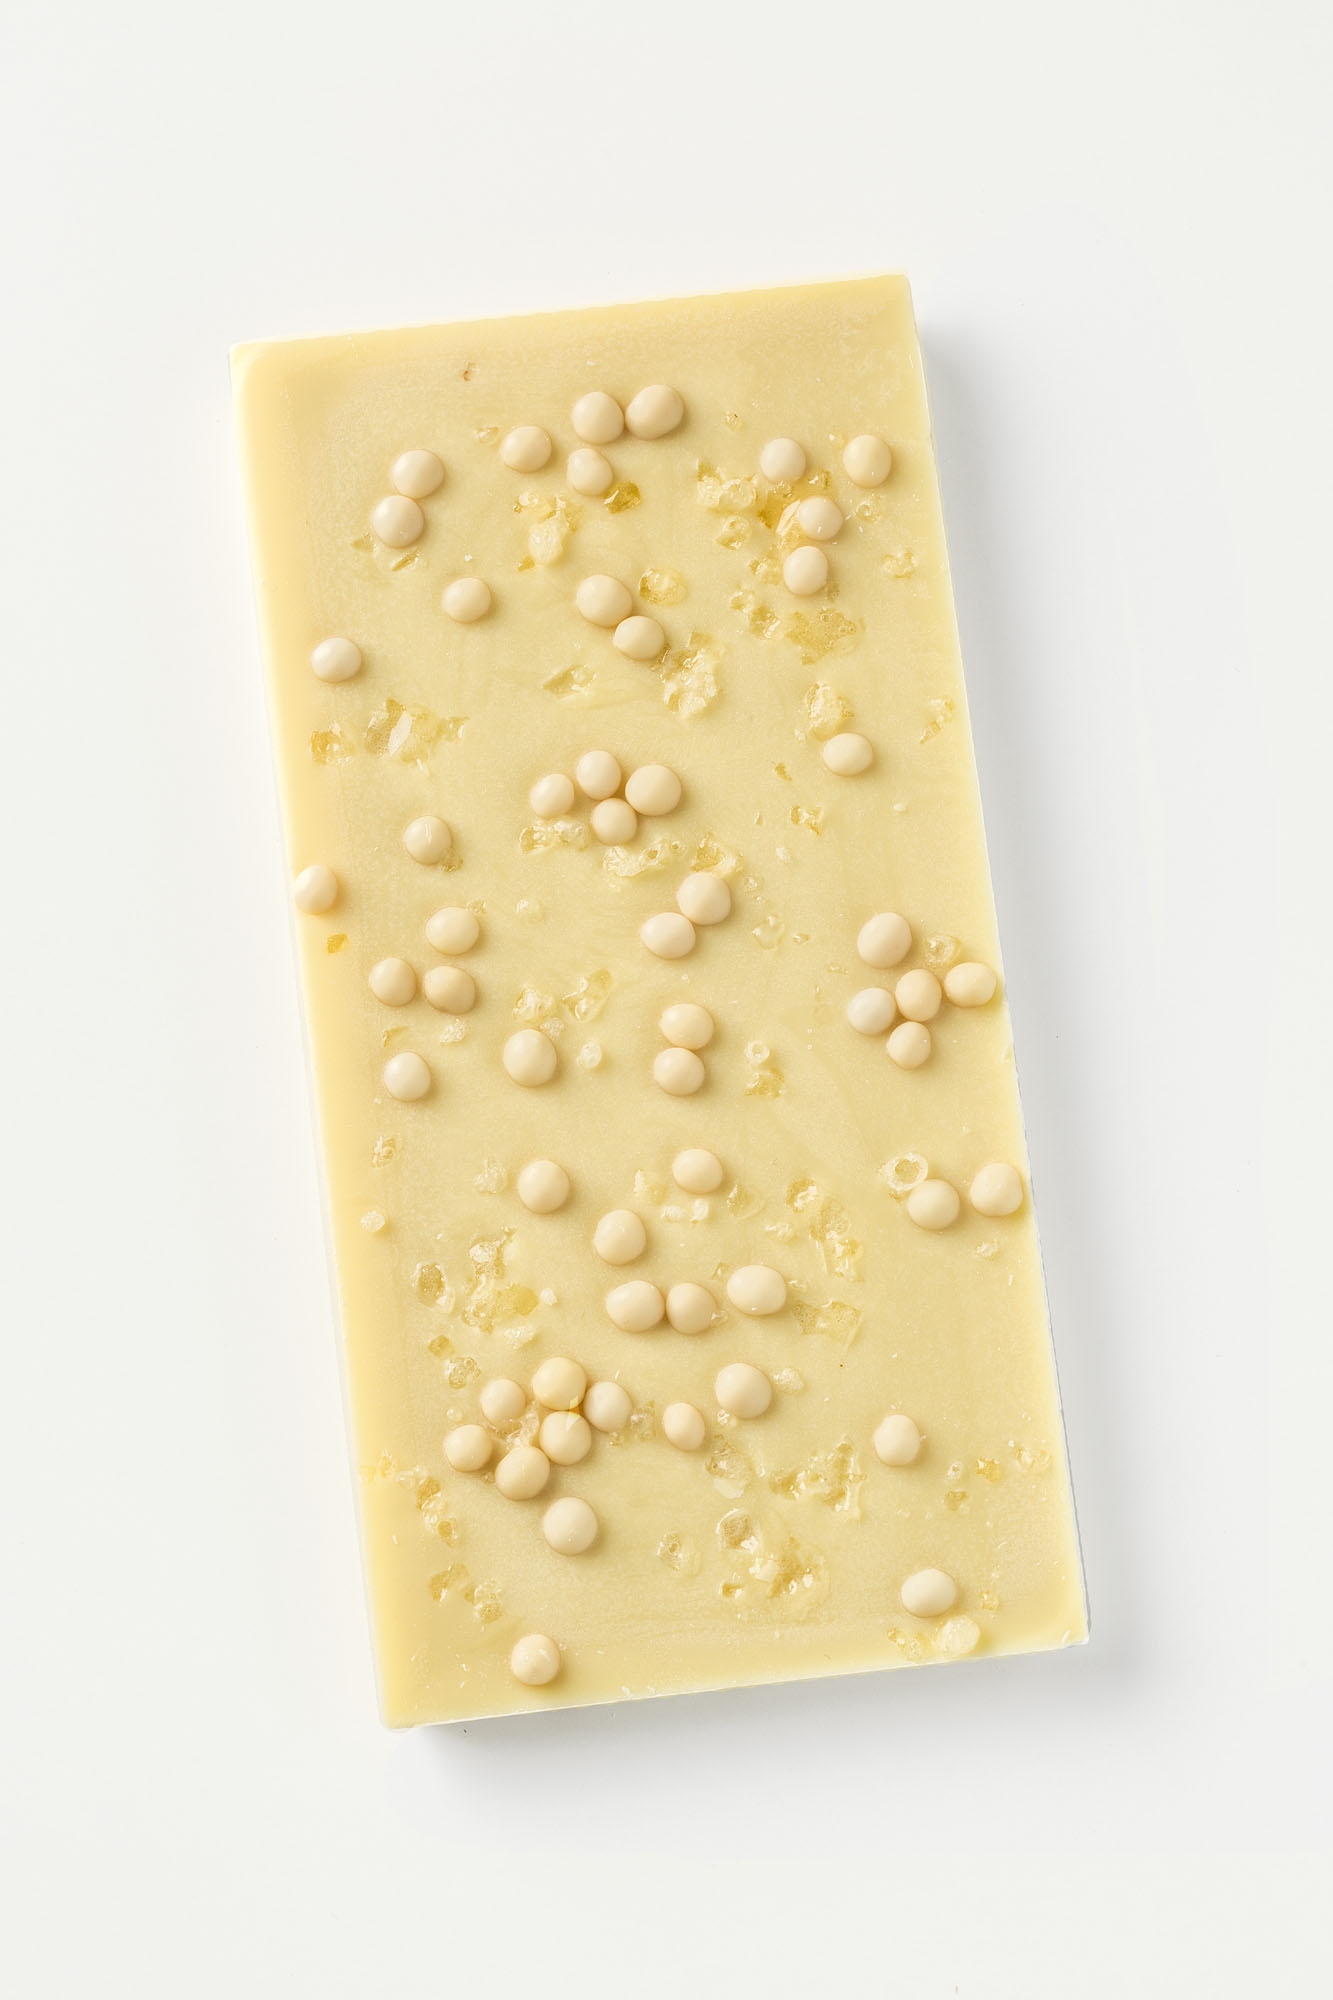 white chocolate bar with popping candy and crunchy pieces